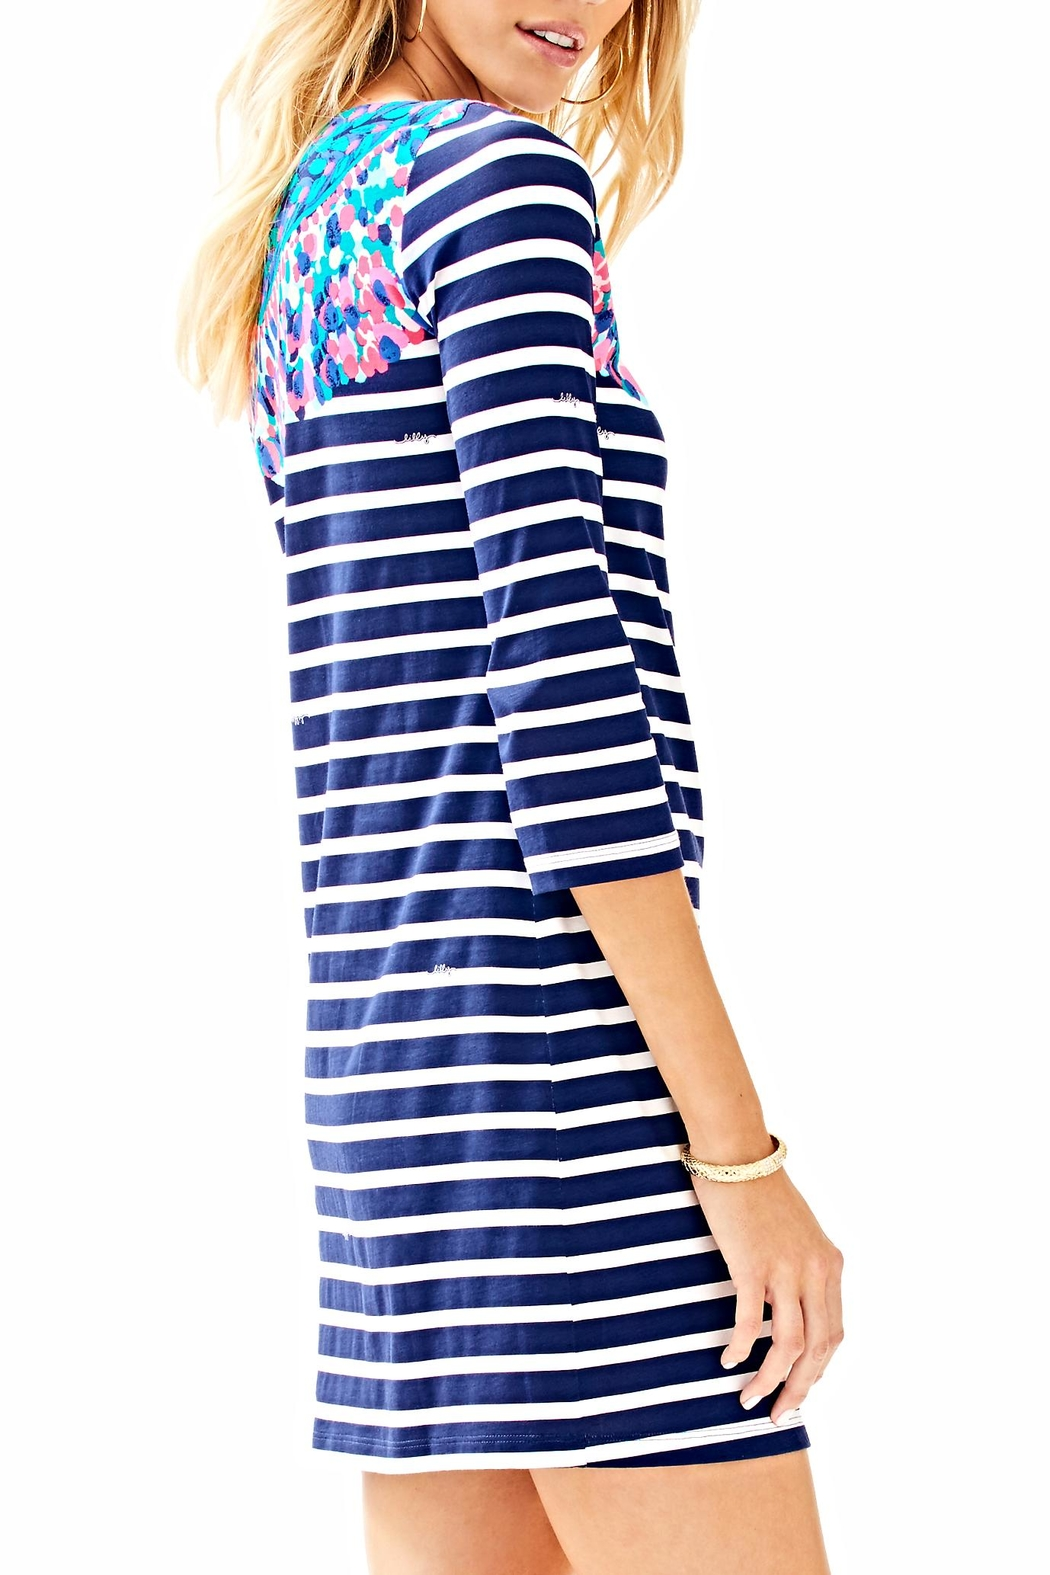 Lilly Pulitzer Bay Dress - Side Cropped Image